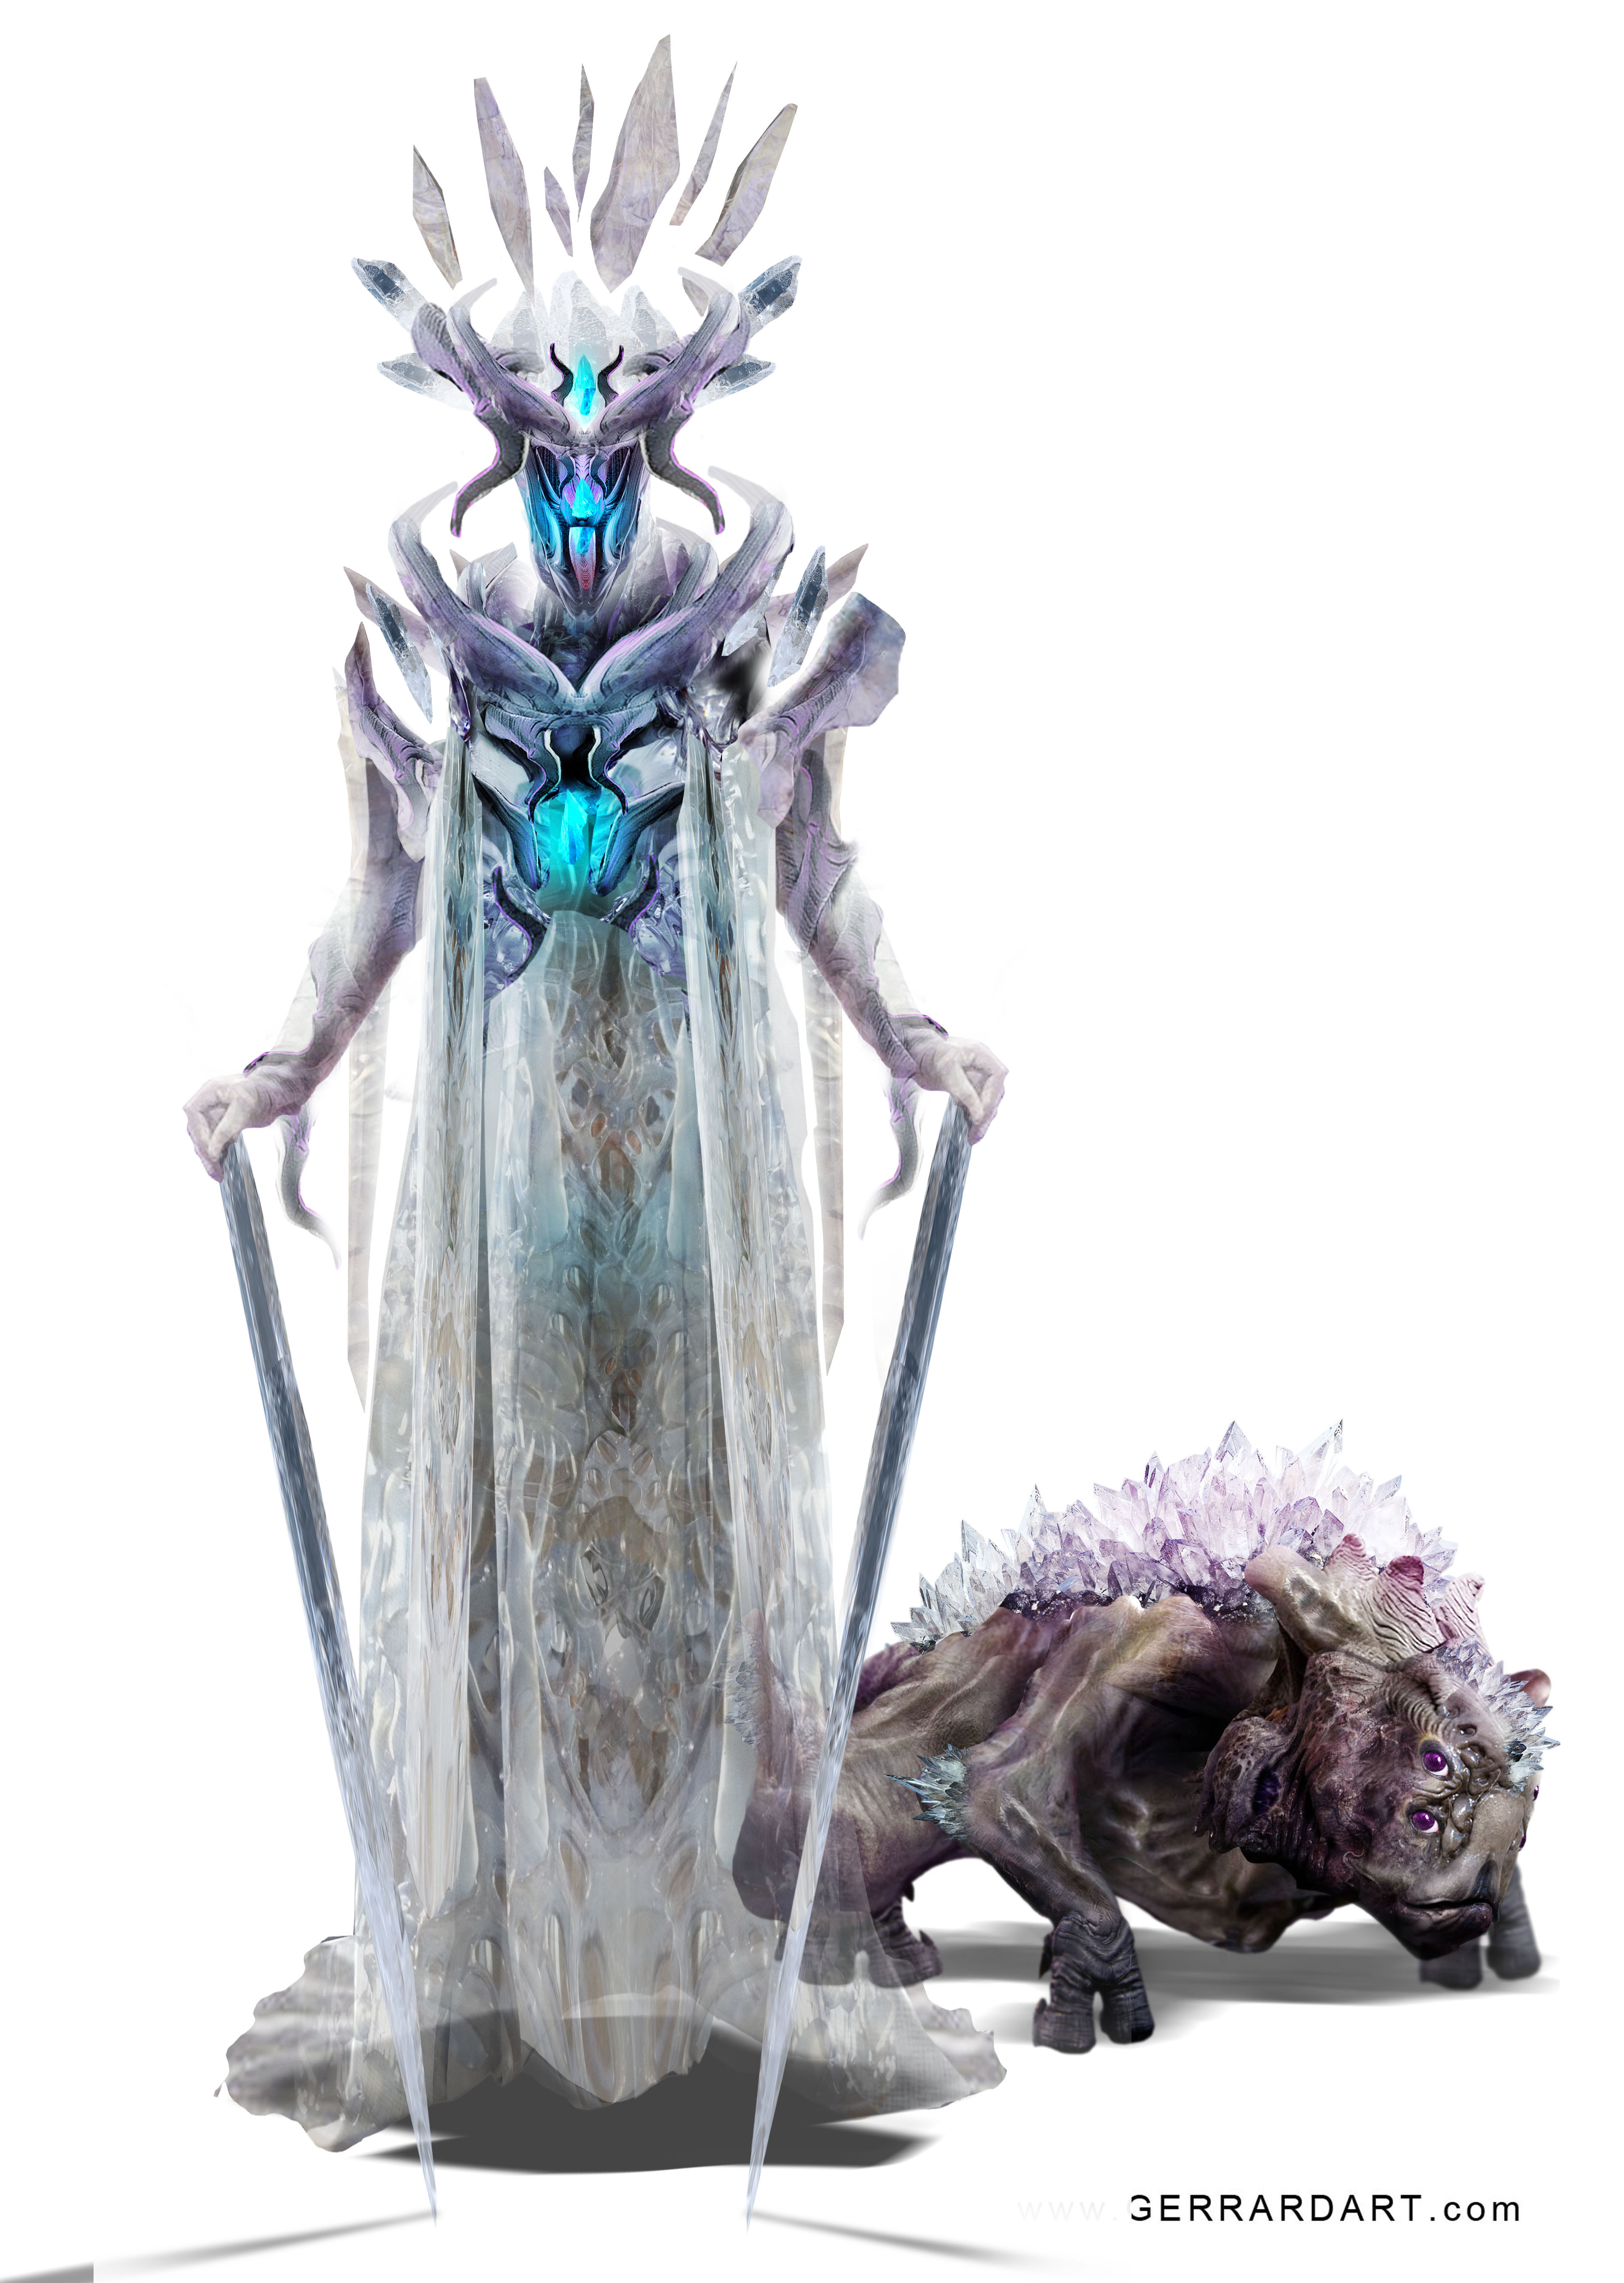 THE CRYSTAL KING   Characters from a new Graphic Novel.  THE CRYSTAL KING : Rise of Atlantis.